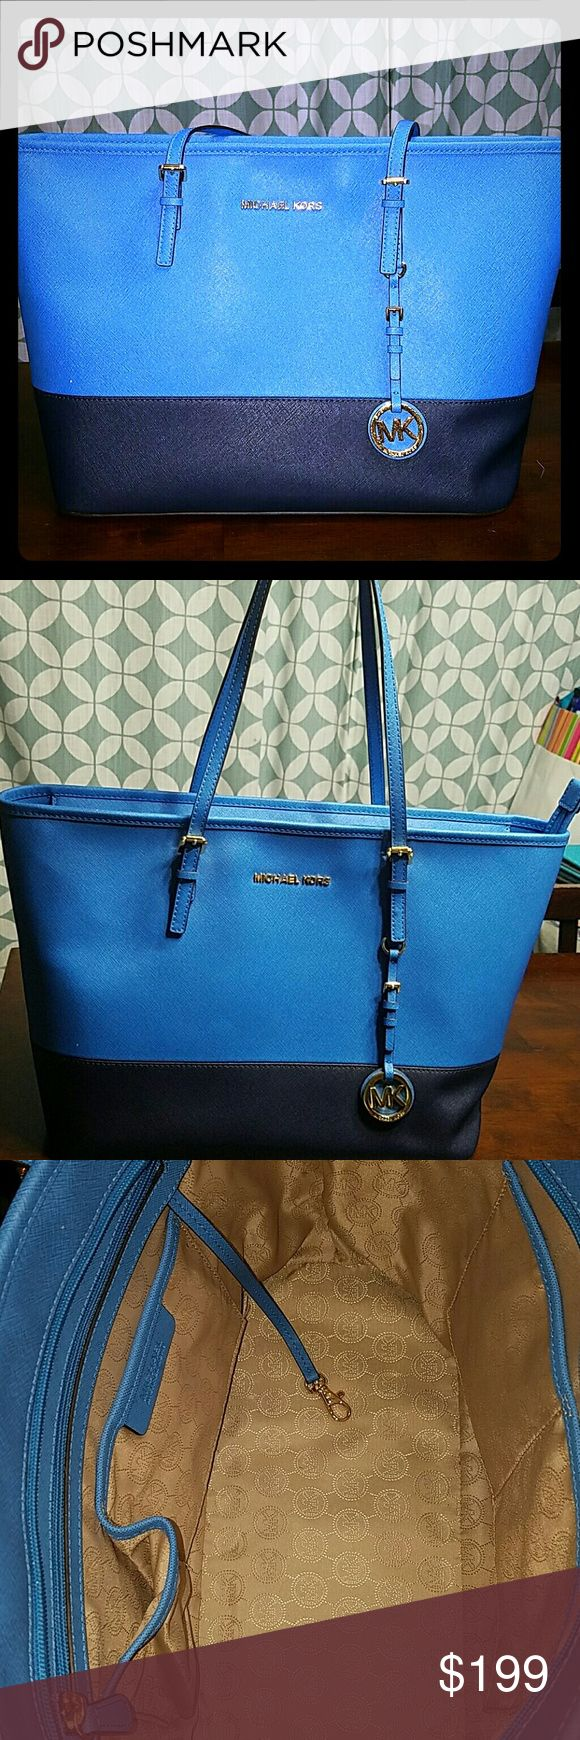 Michael Kors Tote Bag New, never used. Sky Blue with navy bottom and gold accents Michael Kors Bags Totes